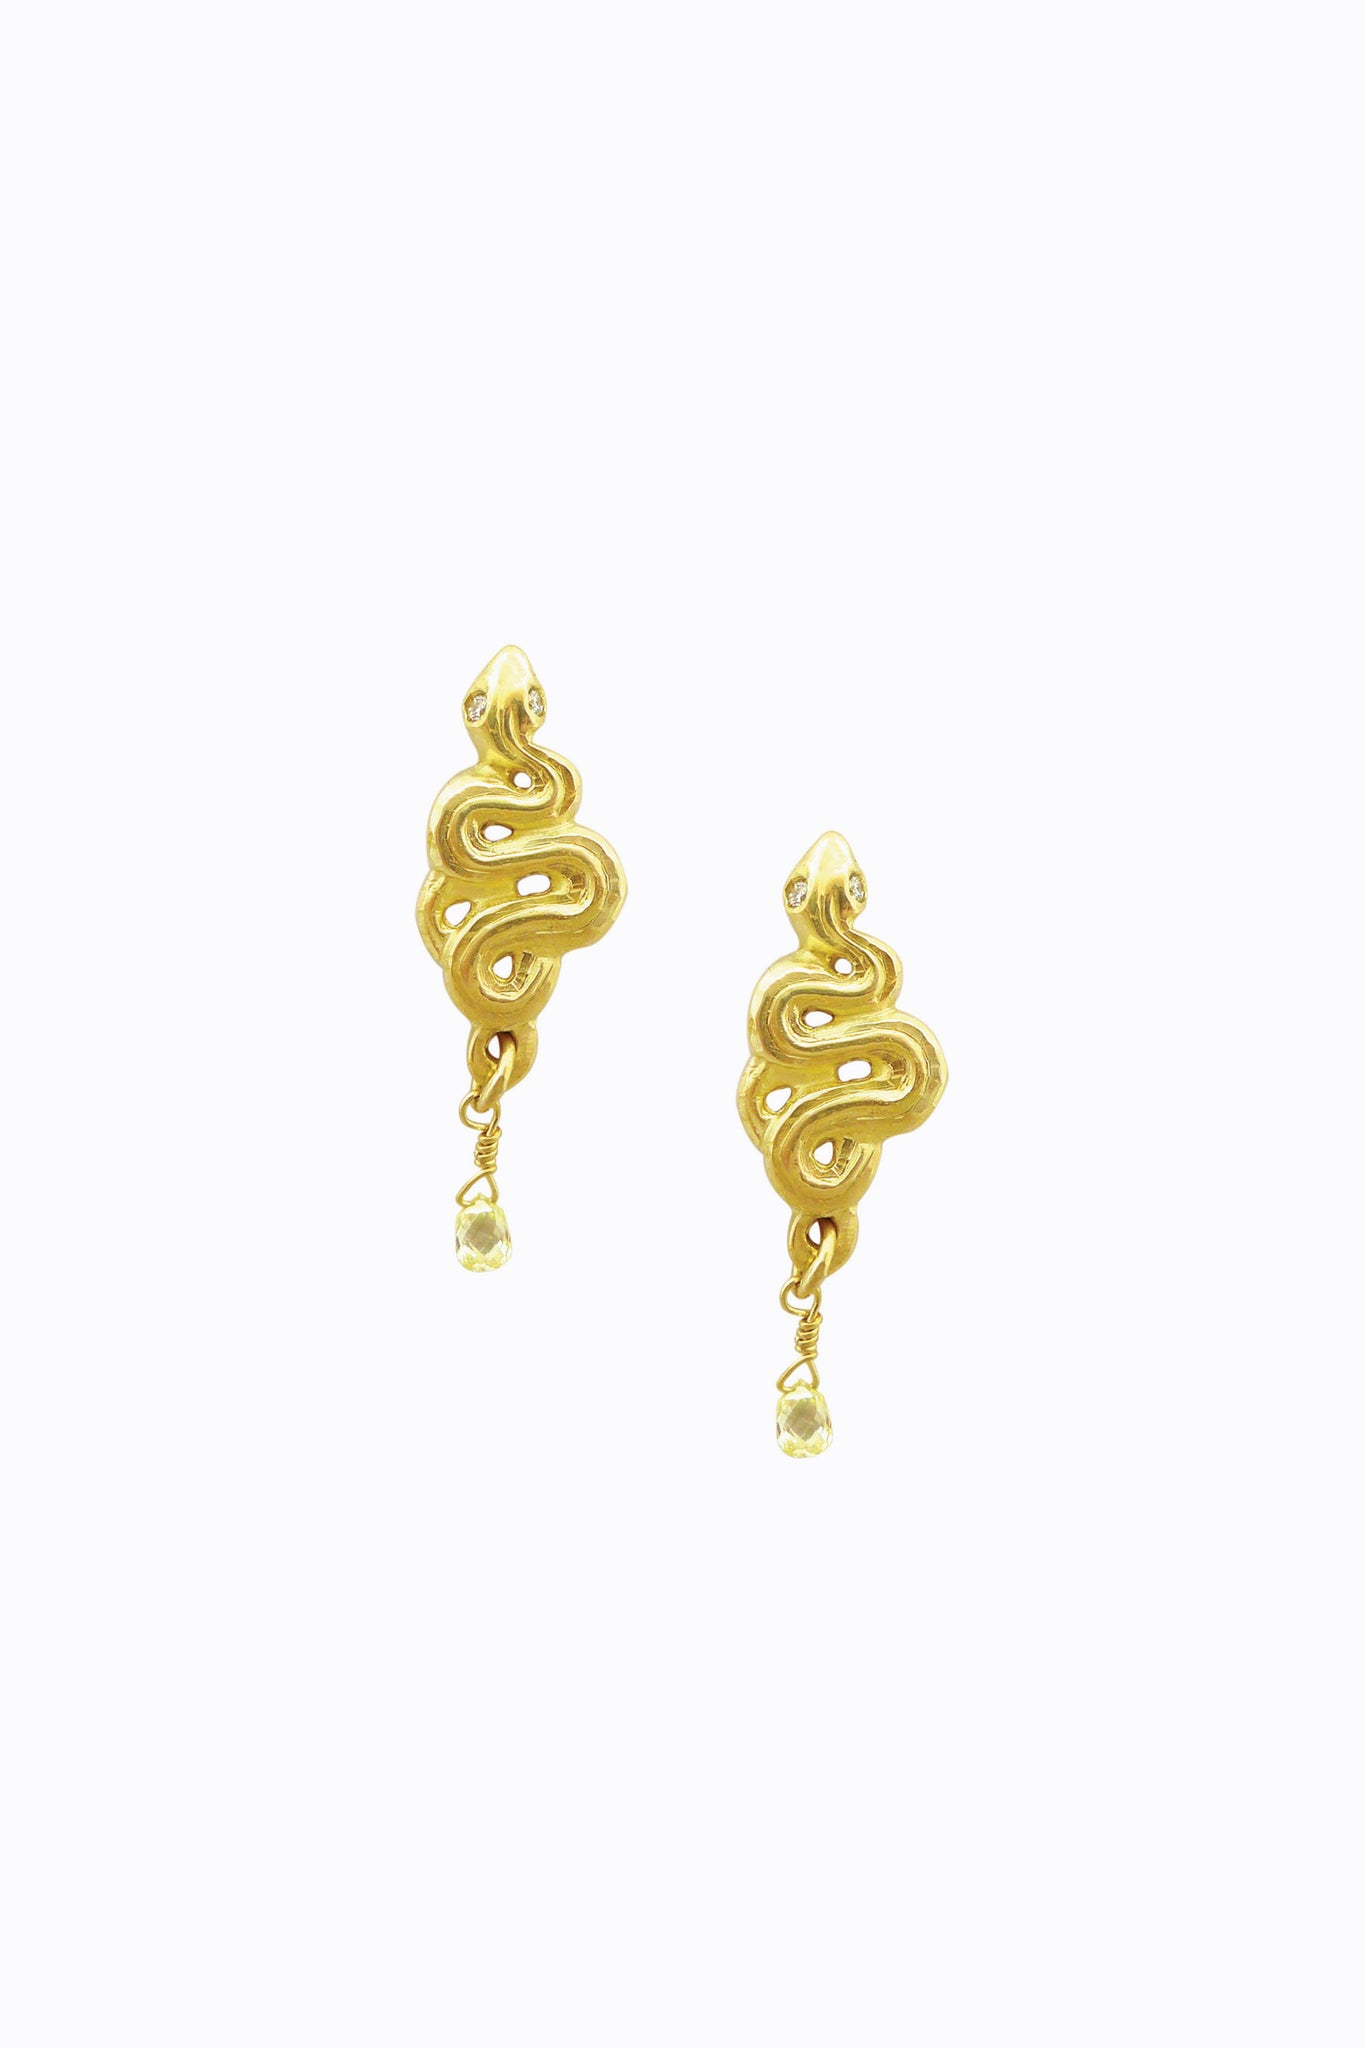 Petite Serpent Earrings